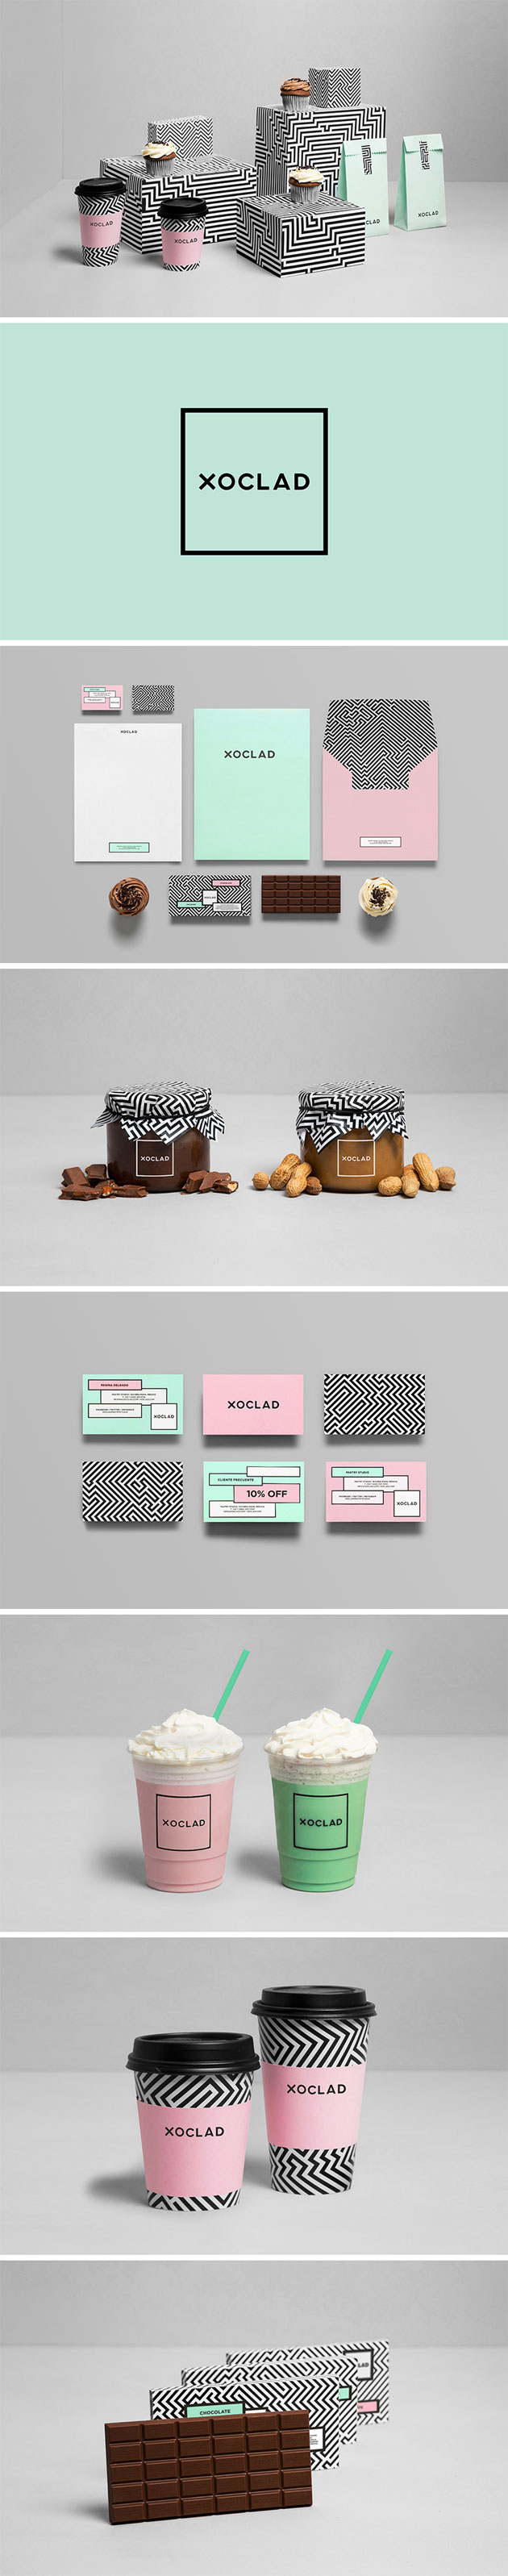 Xoclad branding by Anagrama